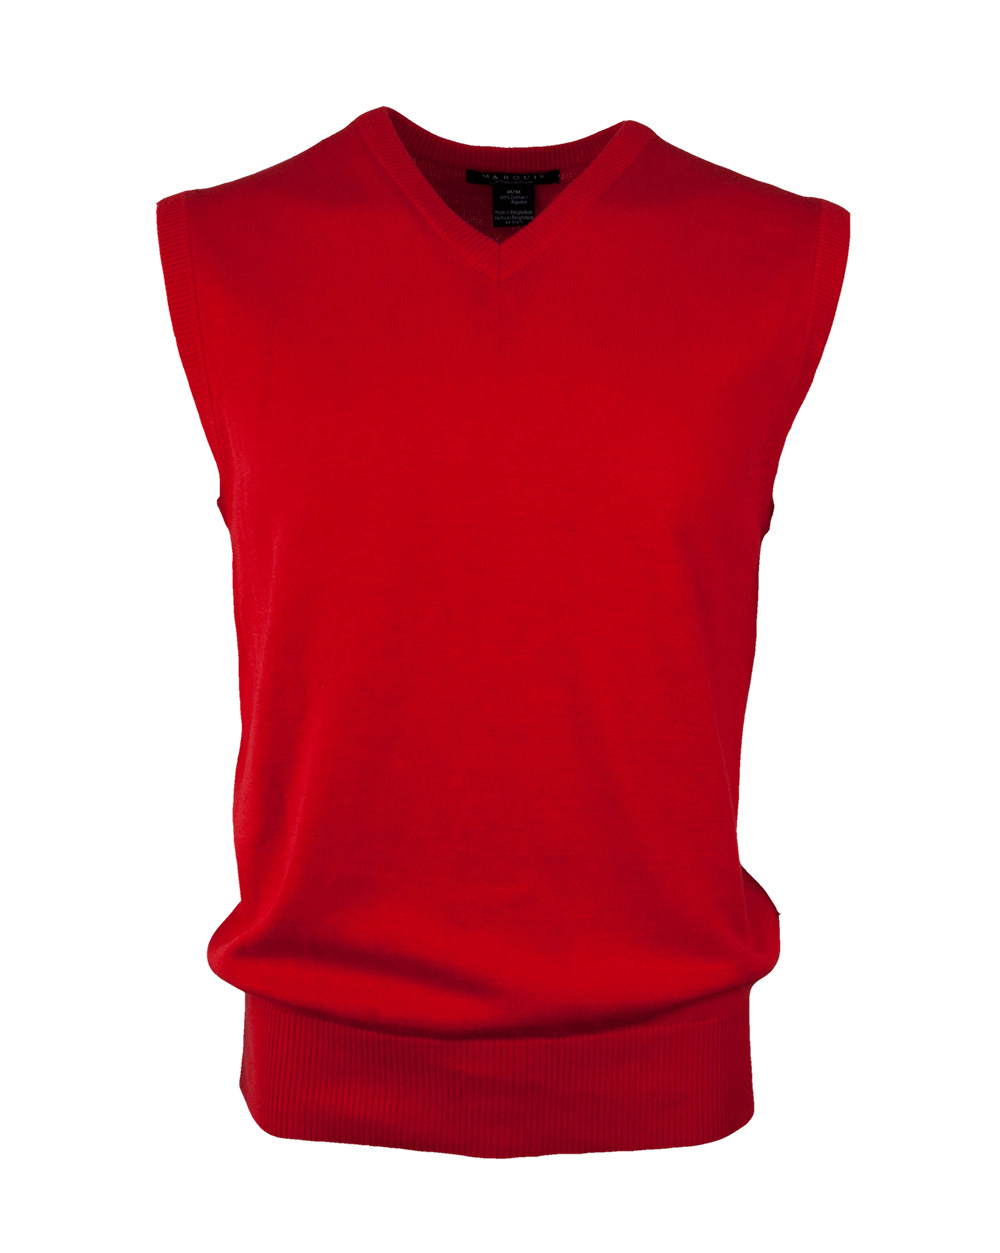 16454 - Red